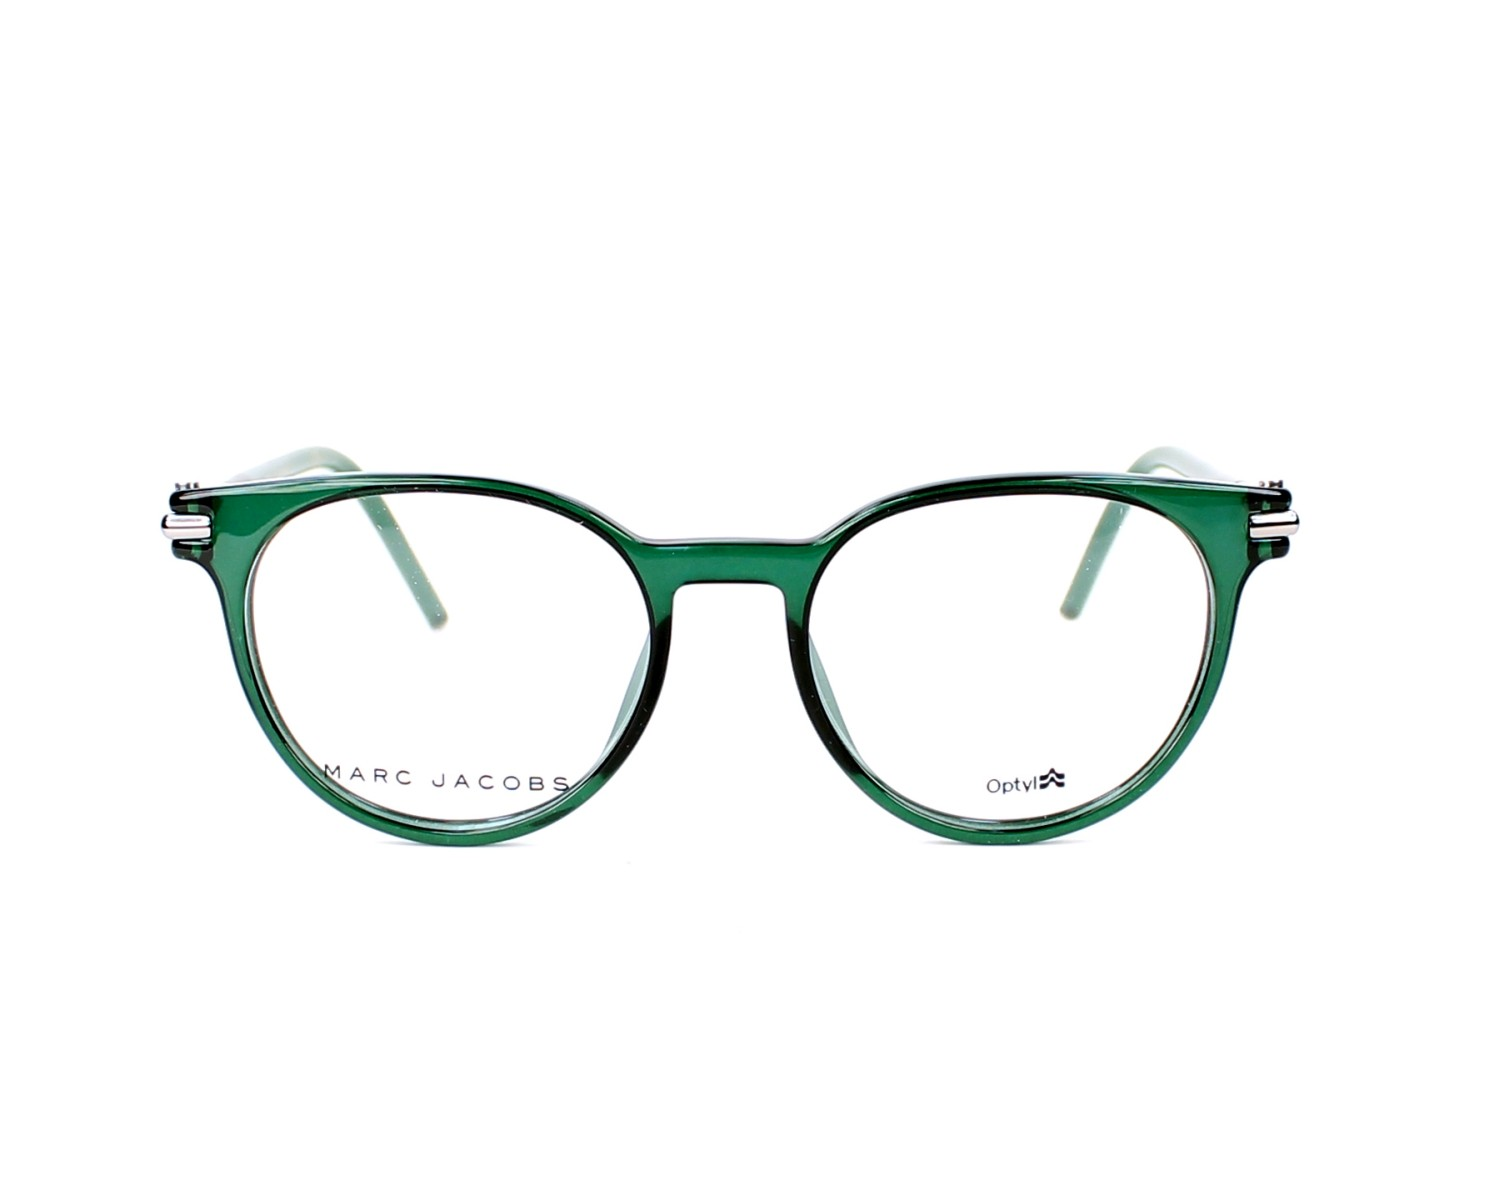 Marc Jacobs Eyeglasses Marc 51 Toi Green